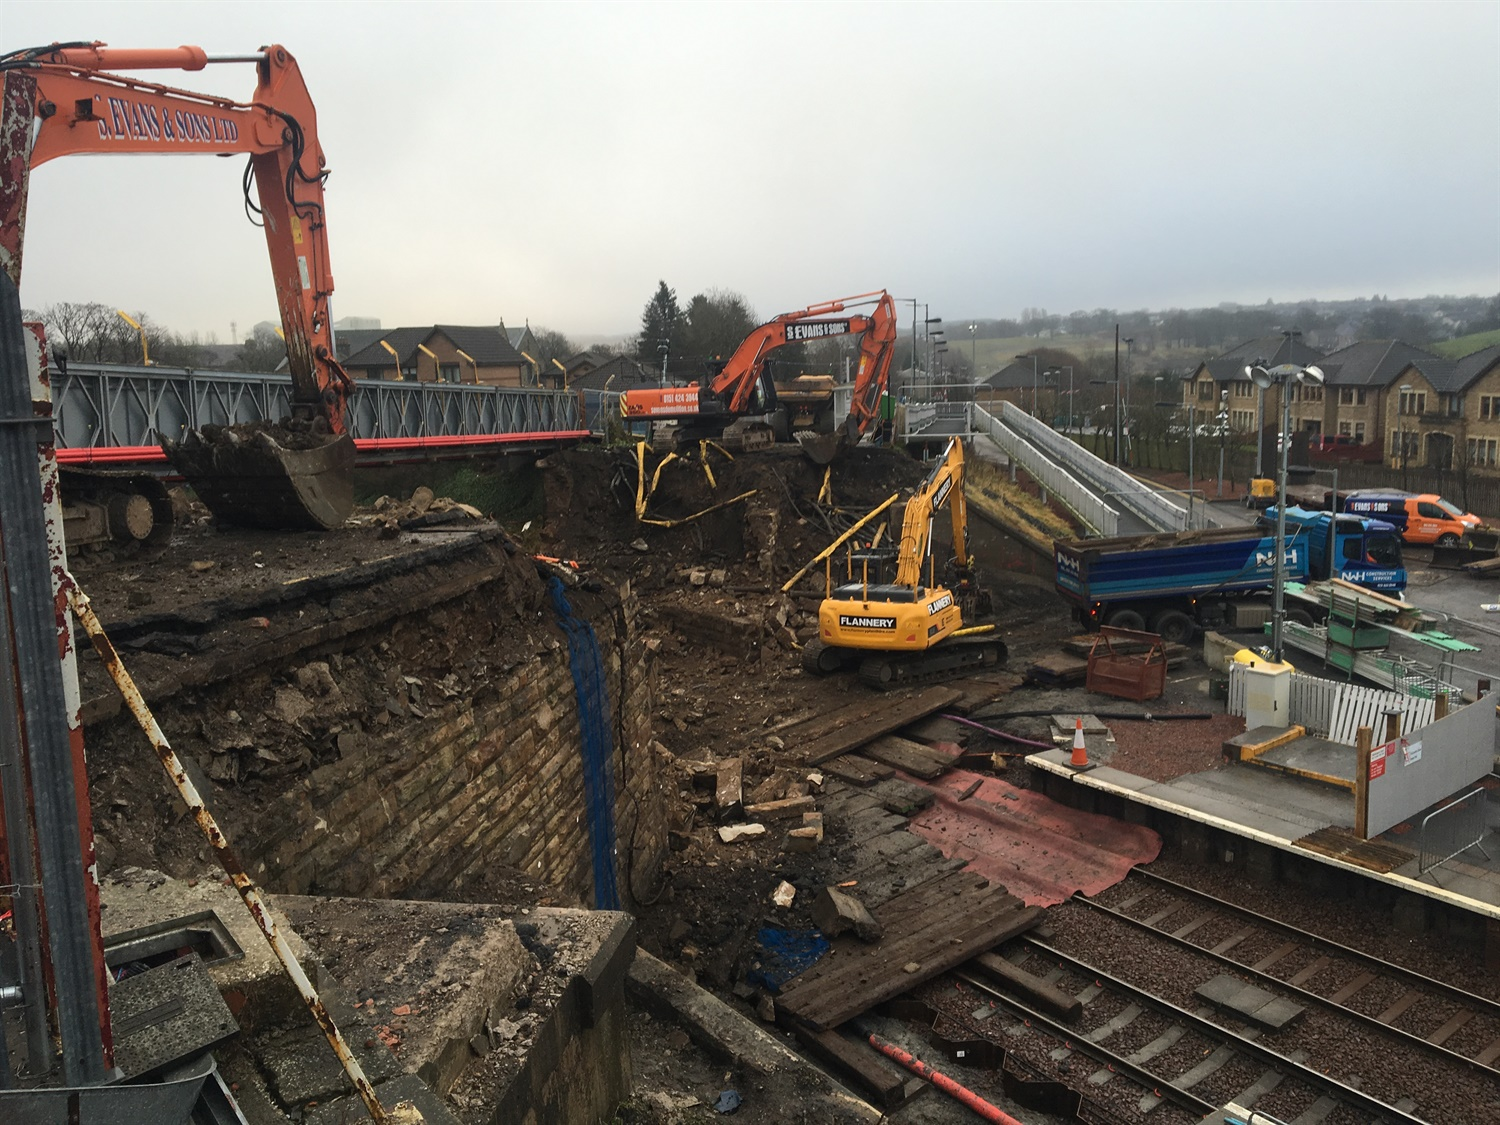 NR demolishes two key bridges as part of Scottish electrification work